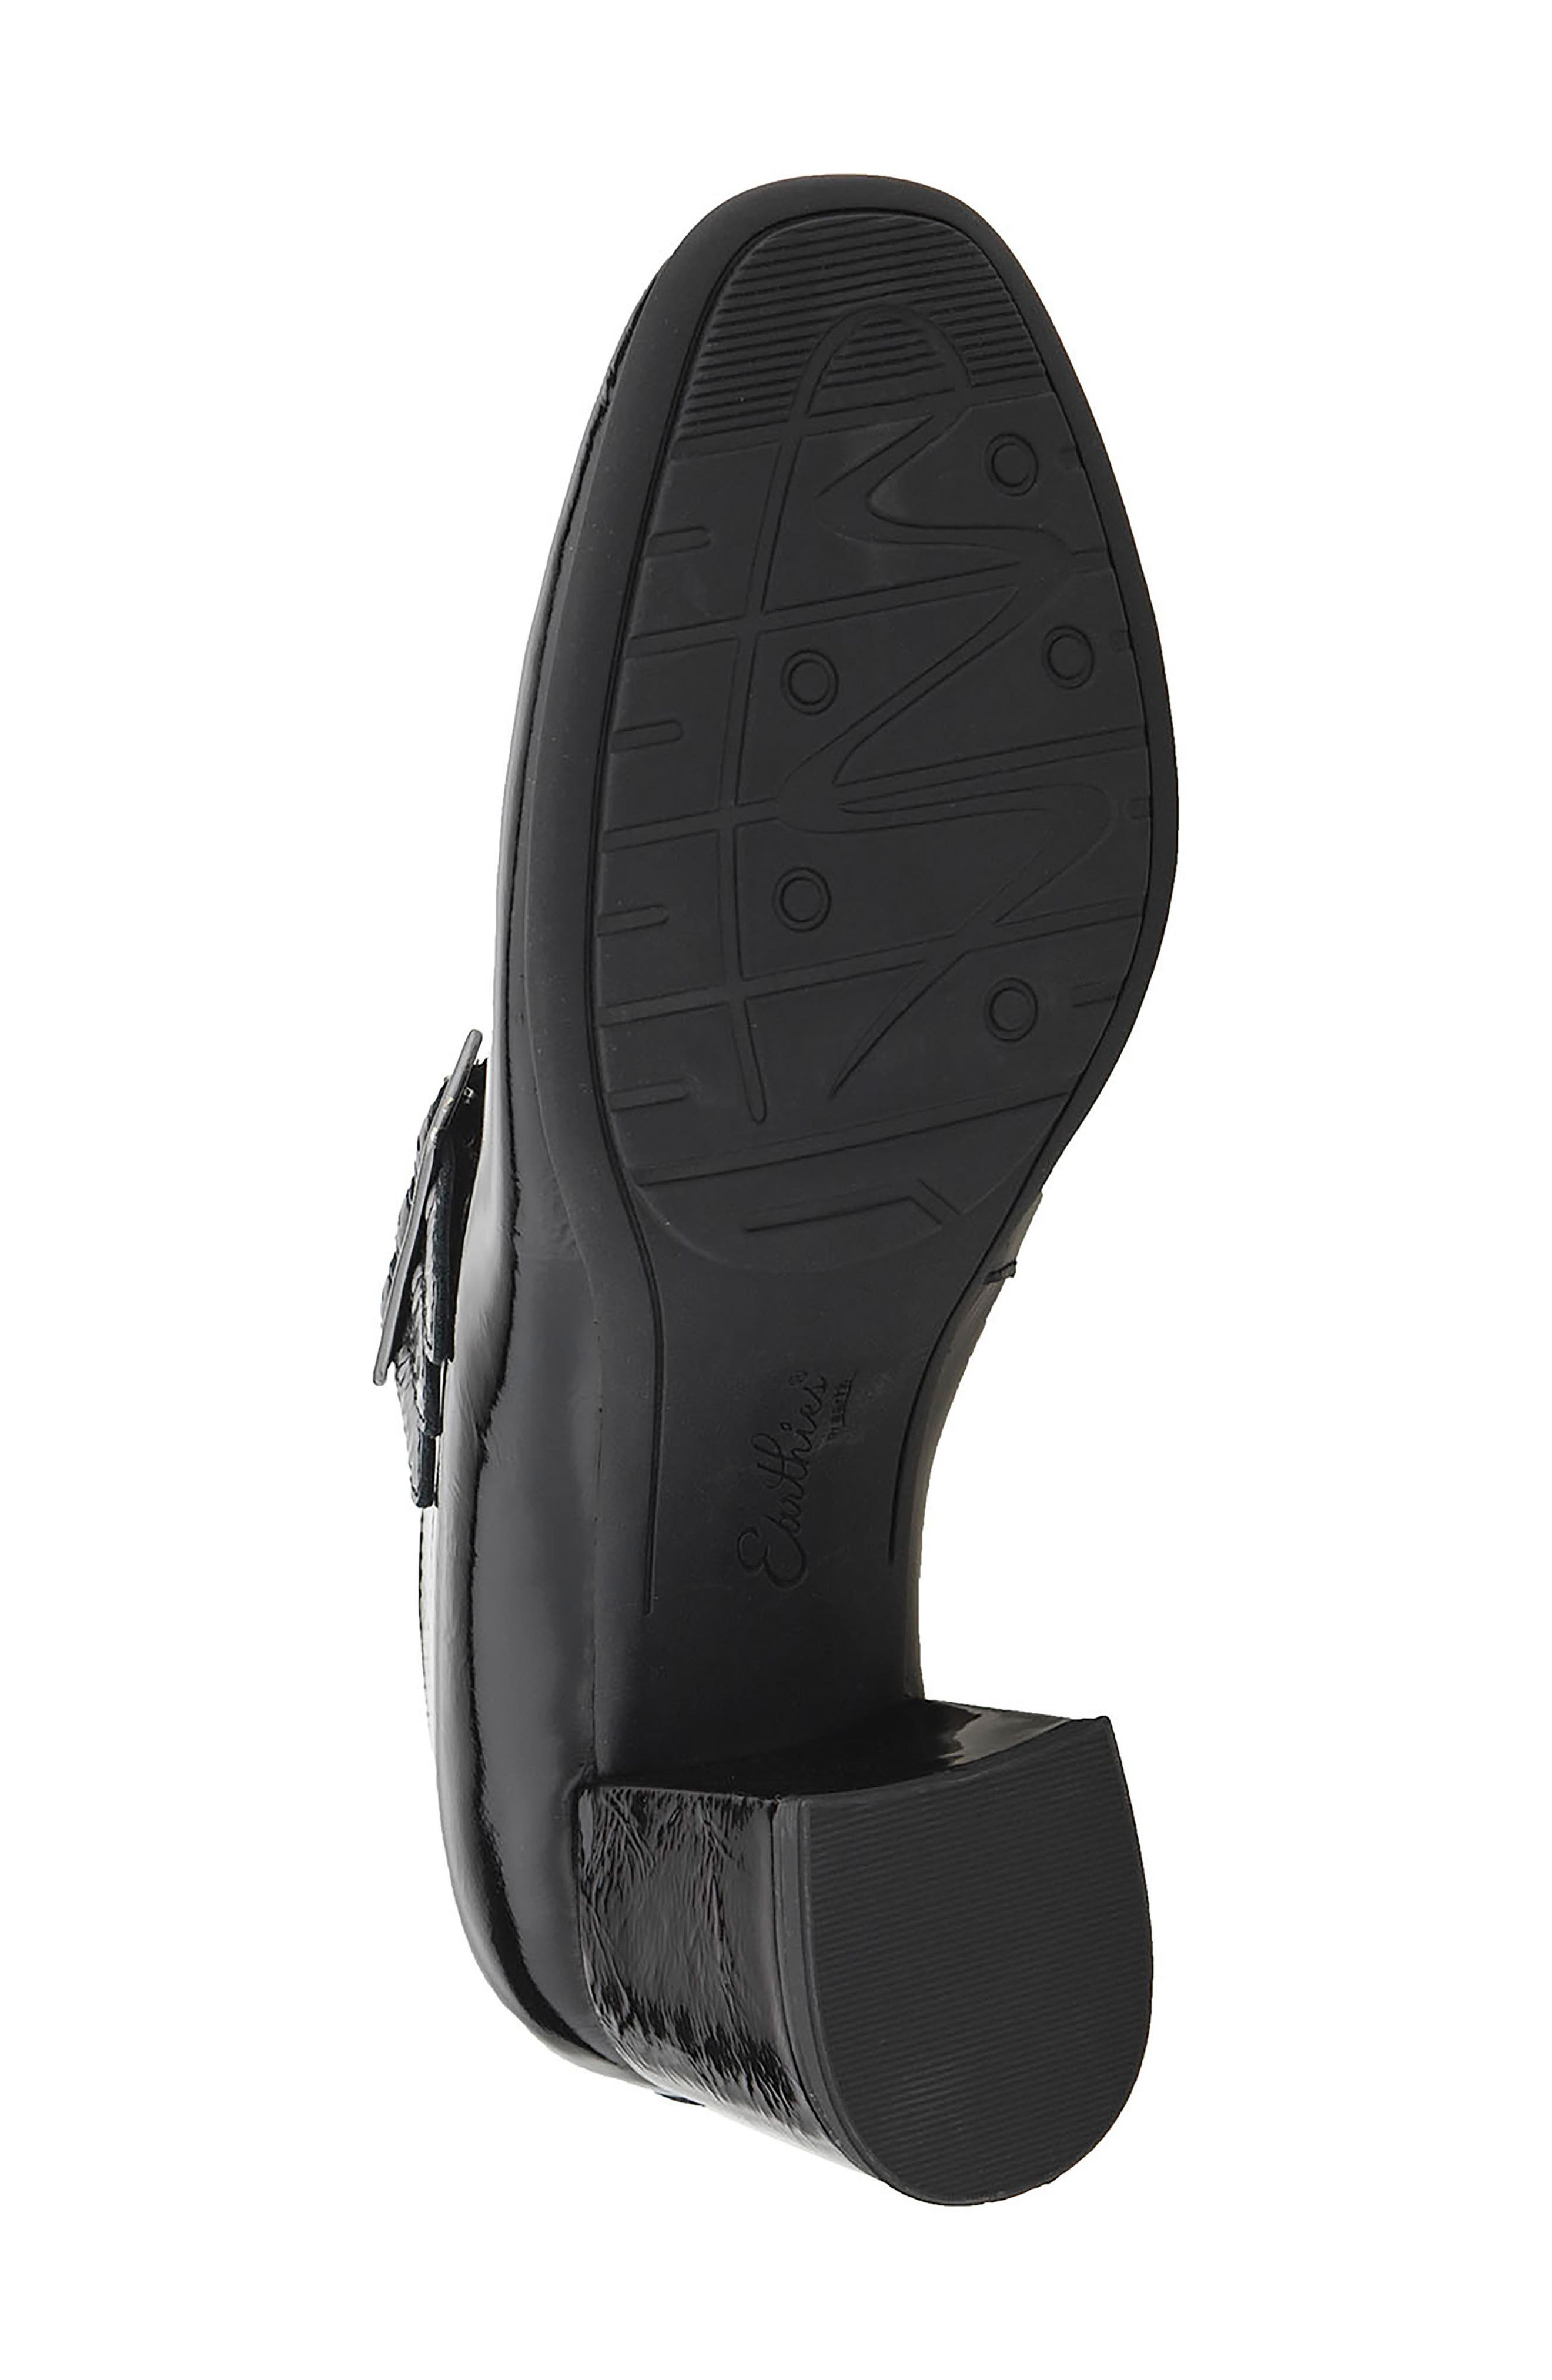 Fortuna Mary Jane Pump,                             Alternate thumbnail 6, color,                             Black Patent Leather